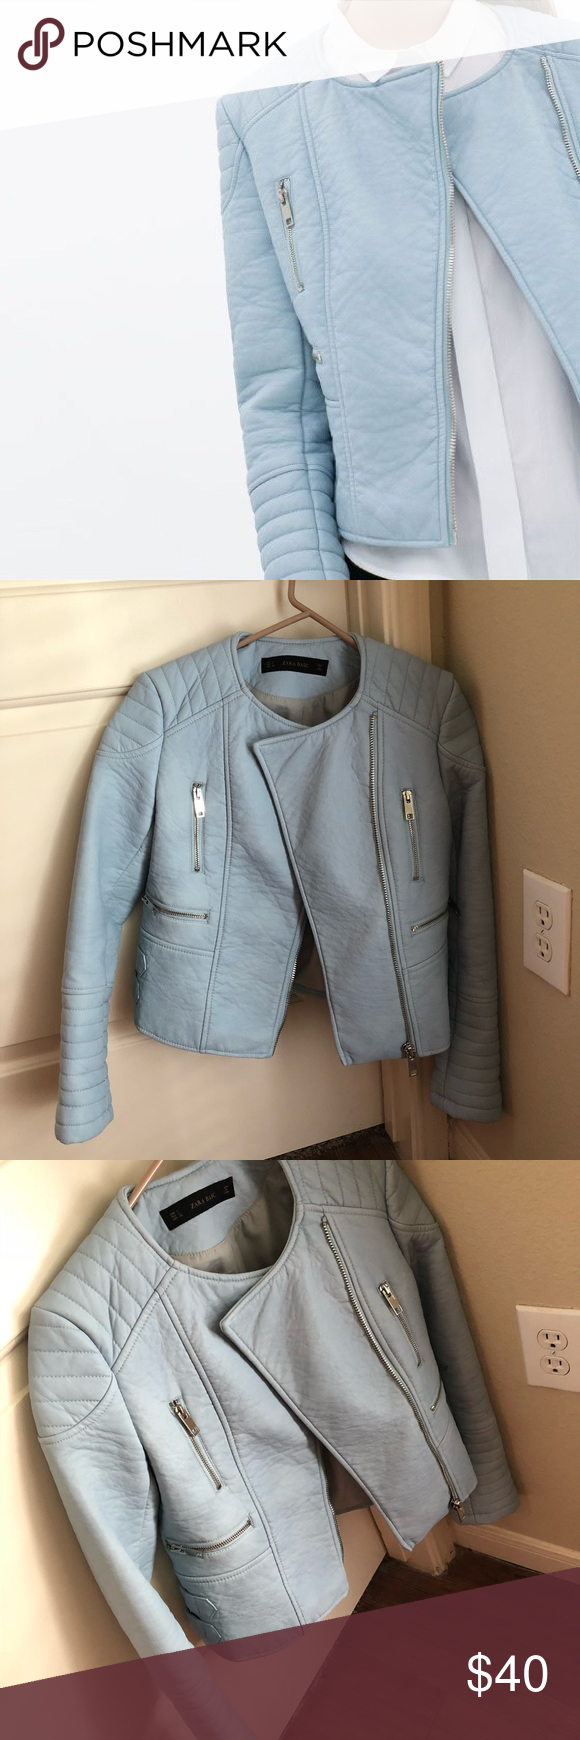 Zara faux leather jacket faux leather jackets baby blue colour